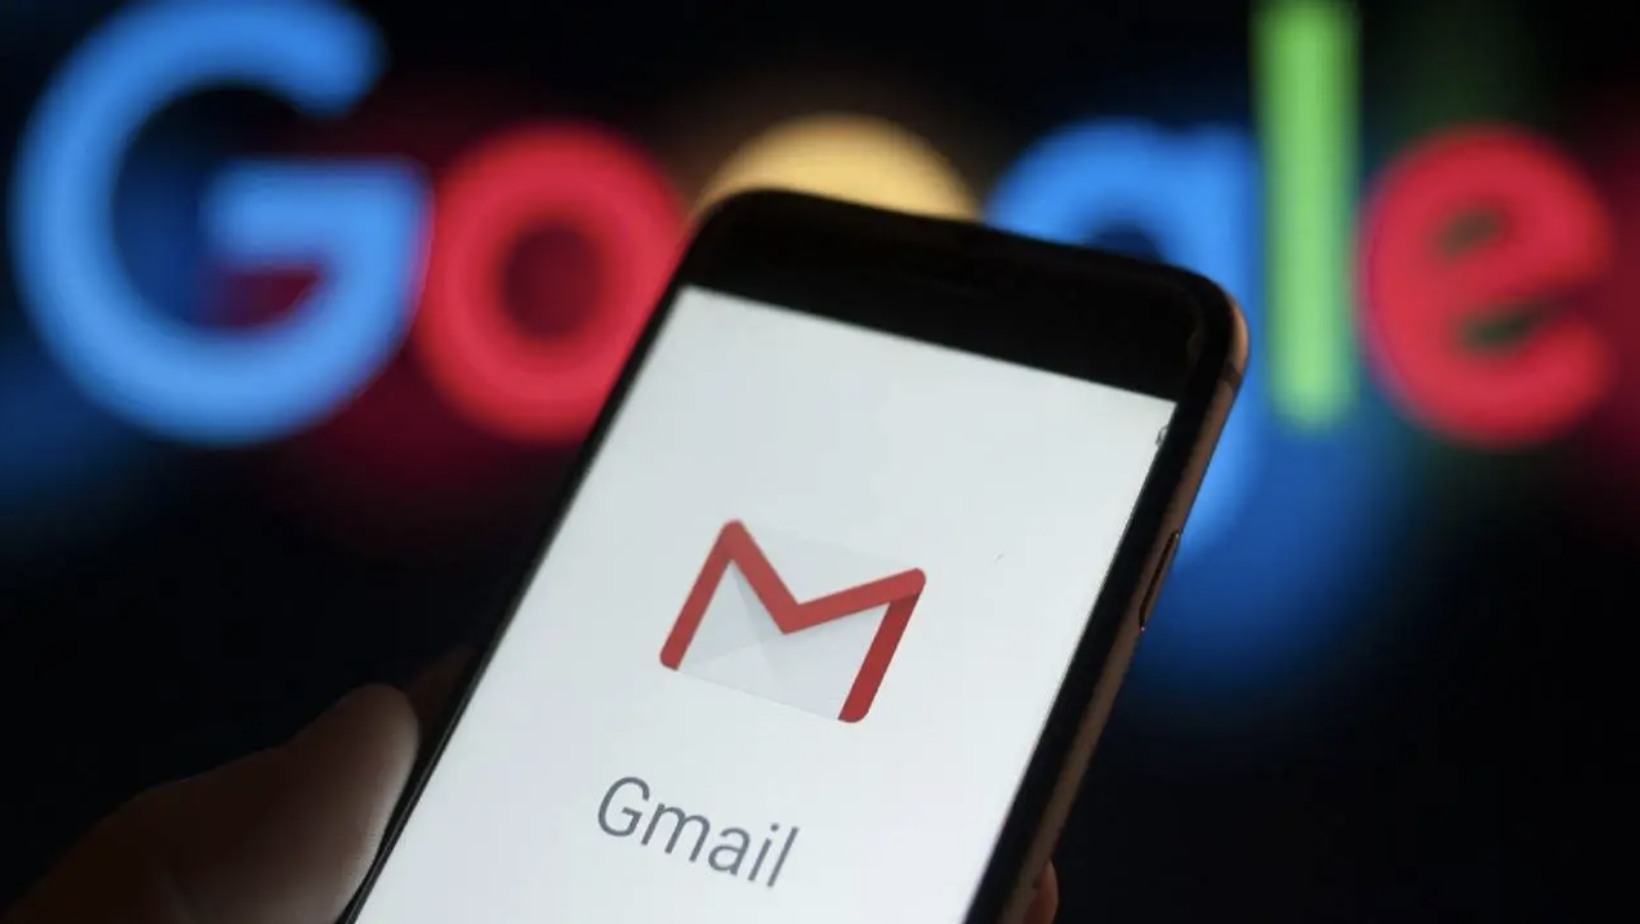 Gmail's Android design is changing! Here is the new state